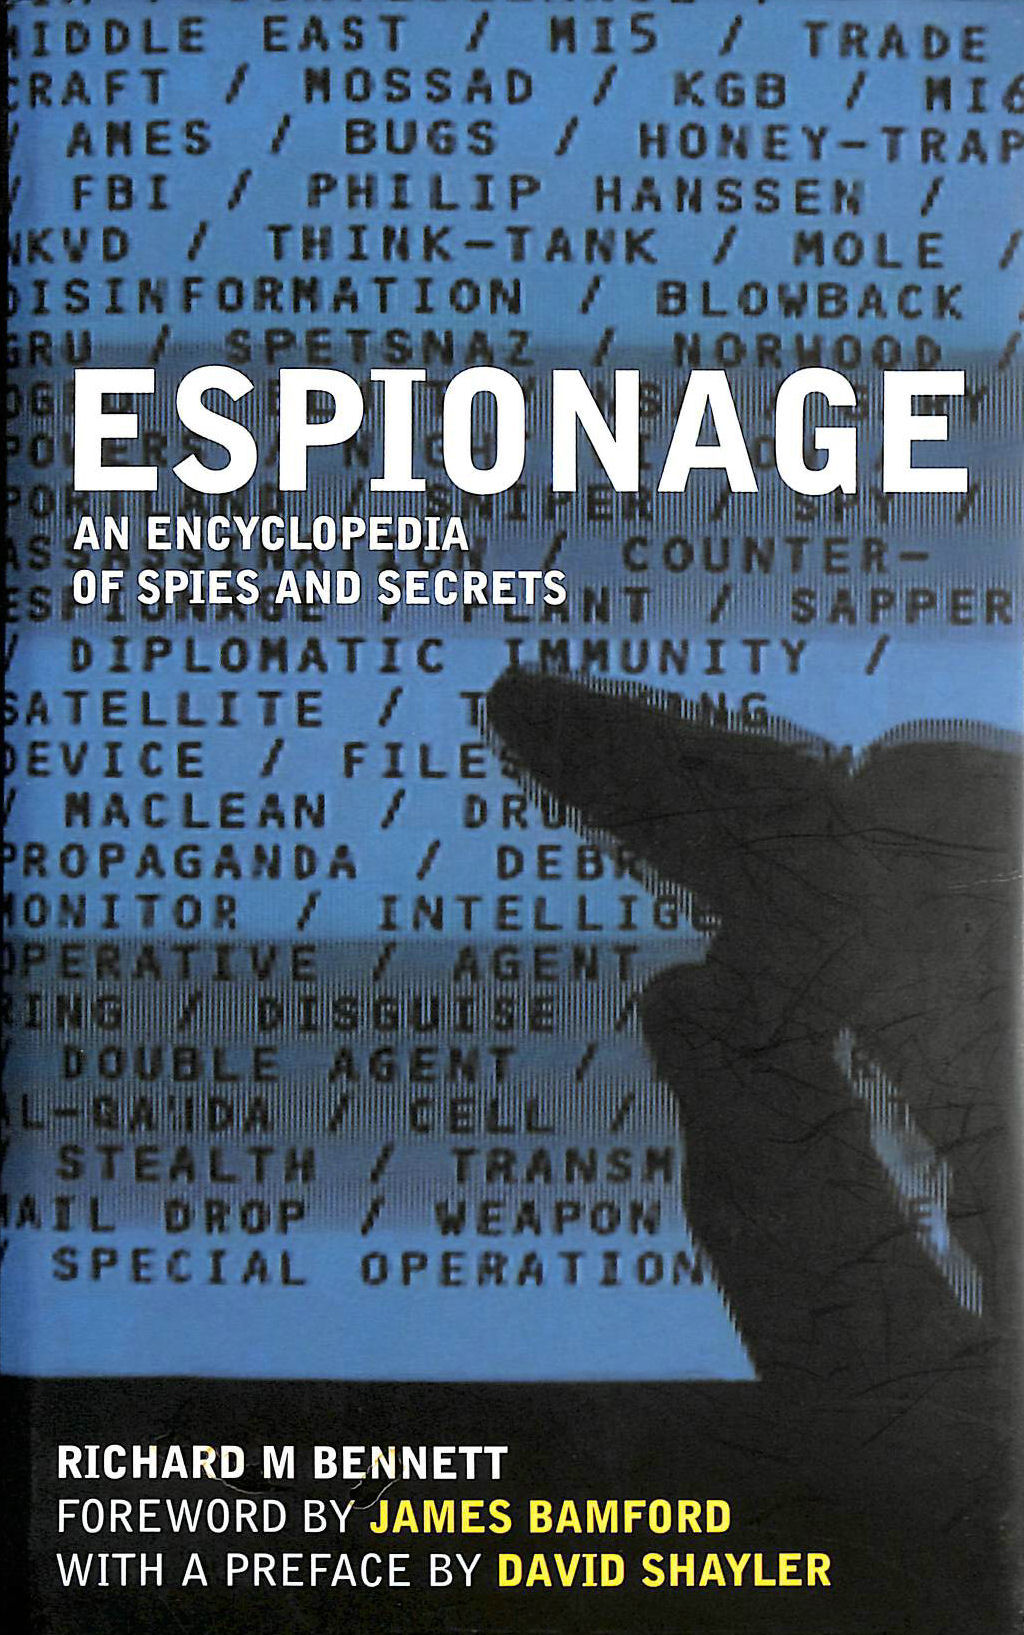 Image for Espionage: An Encyclopedia of Spies and Secrets